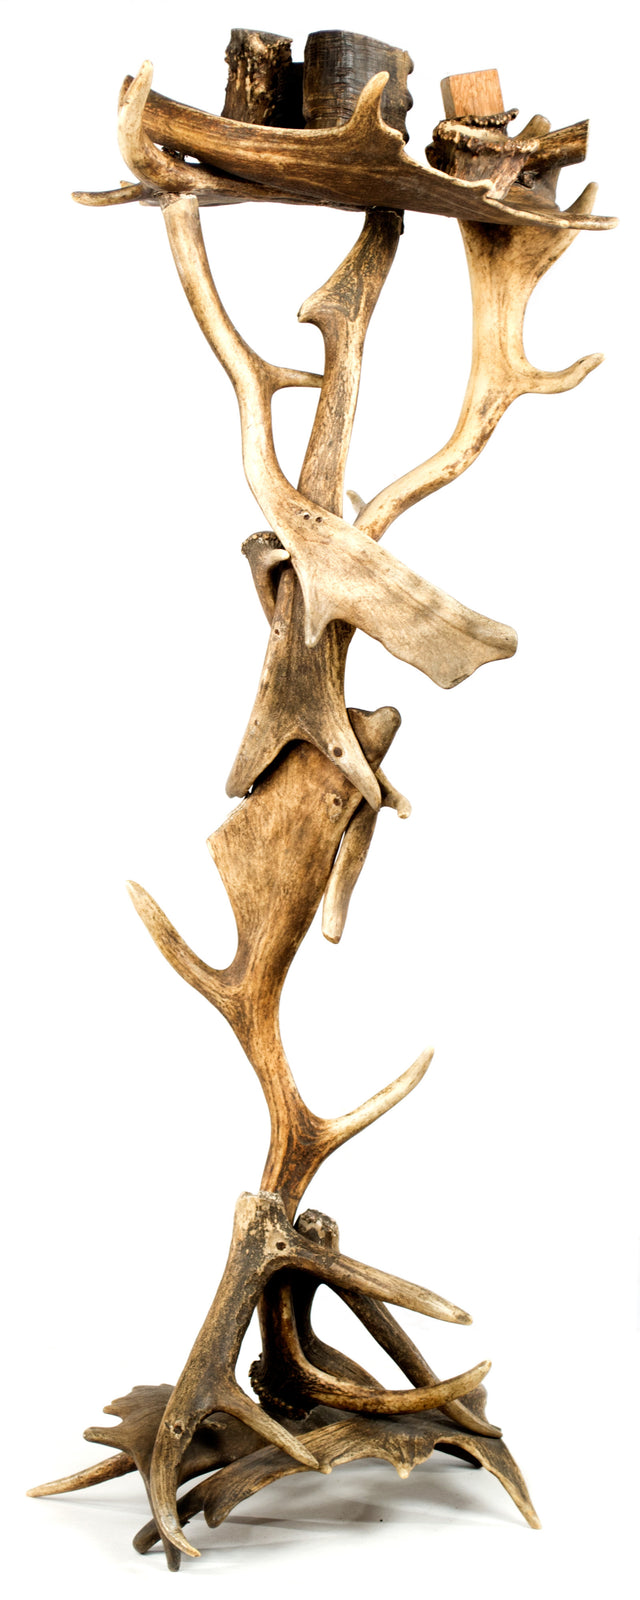 Cigar Caddy Made of Fallow Deer Antlers